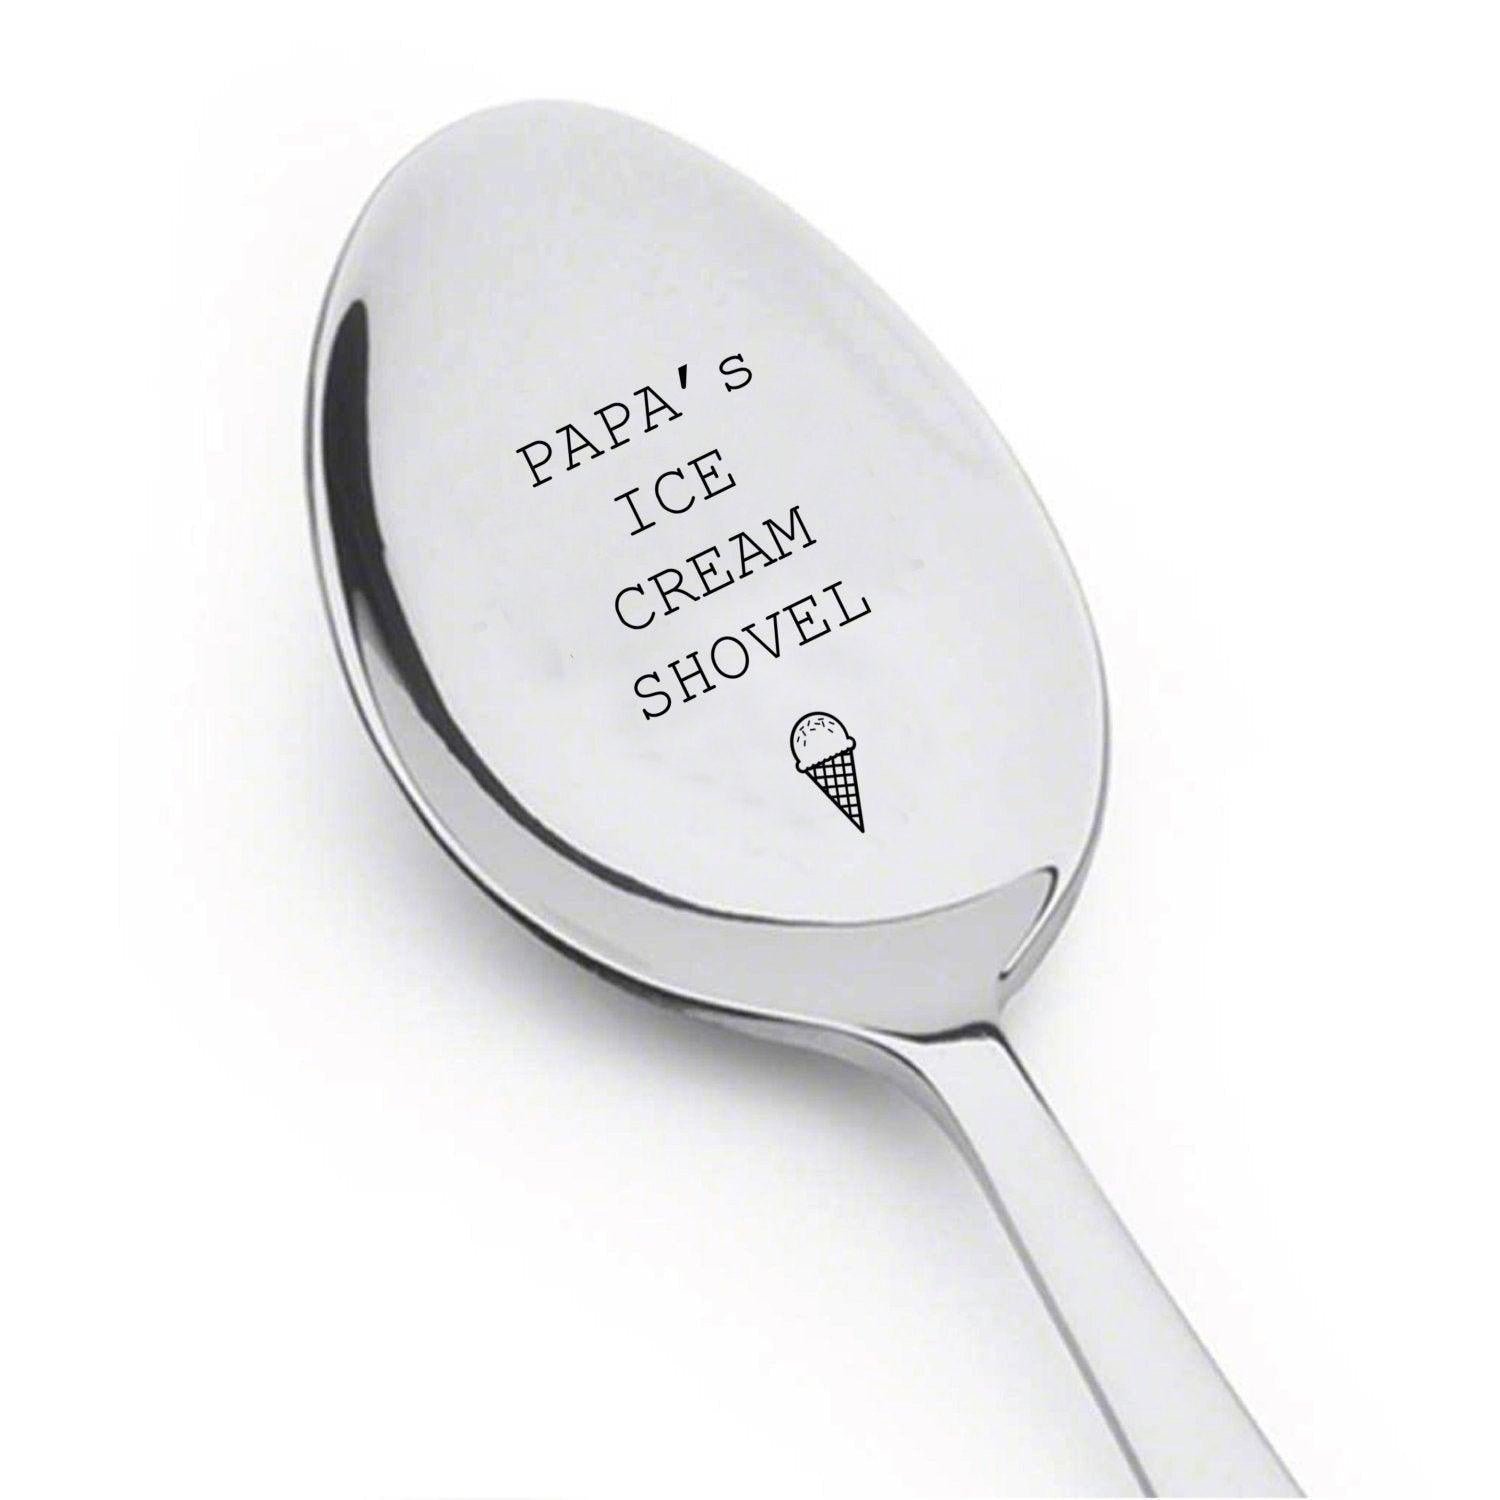 Papa's ice cream Shovel | Father's day gift |Gift for dad | Gift for Ice Cream Lover - BOSTON CREATIVE COMPANY